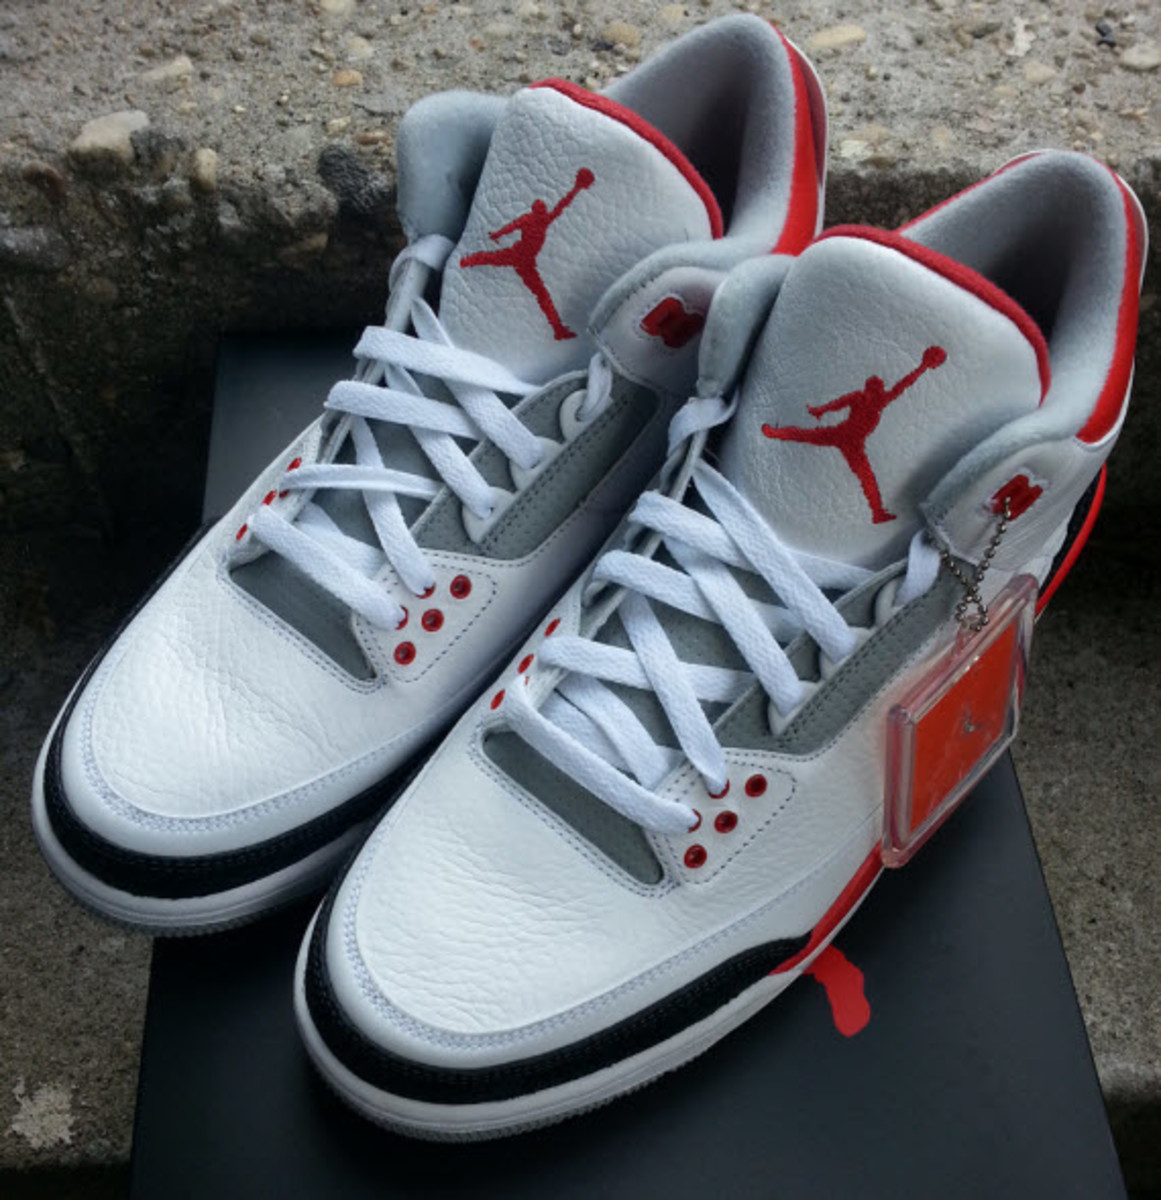 Top 10 Coolest Air Jordans of All Time | TheRichest